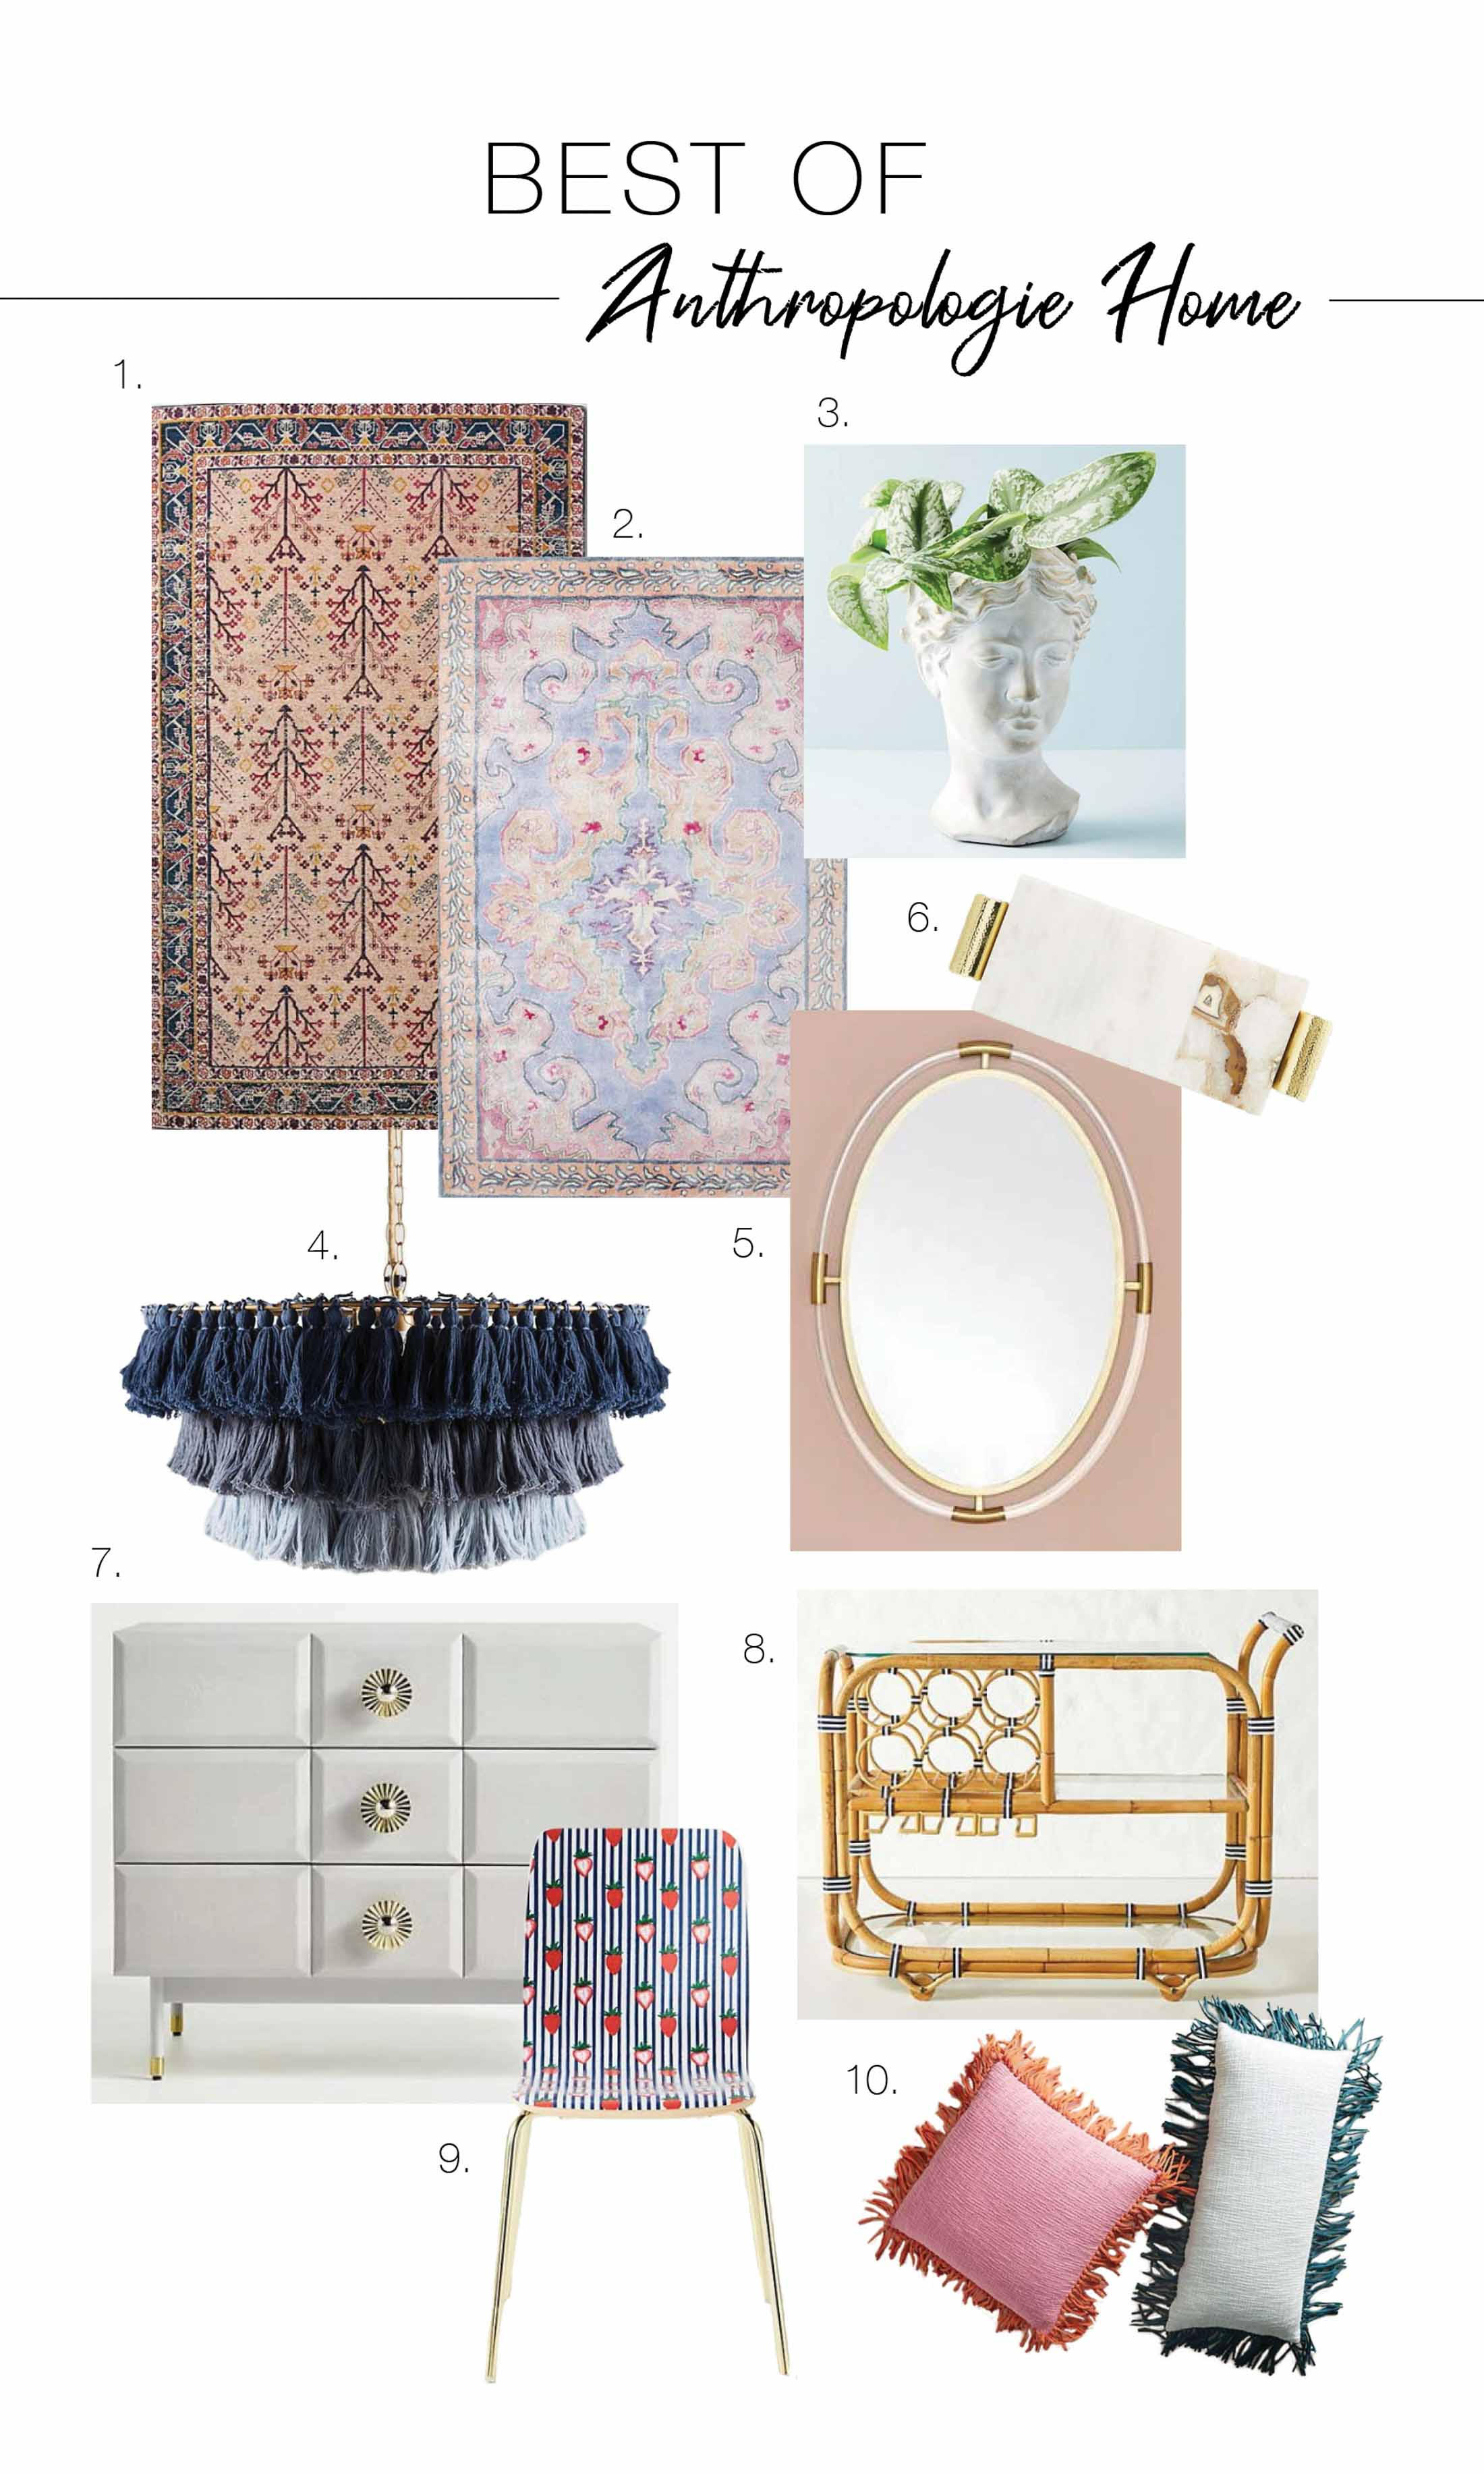 The Anthropologie Summer Home Event is SO GOOD. It's sale upon sale, for sweet furnishings & accents like rugs, bedding & kitchen. Check out our top picks!